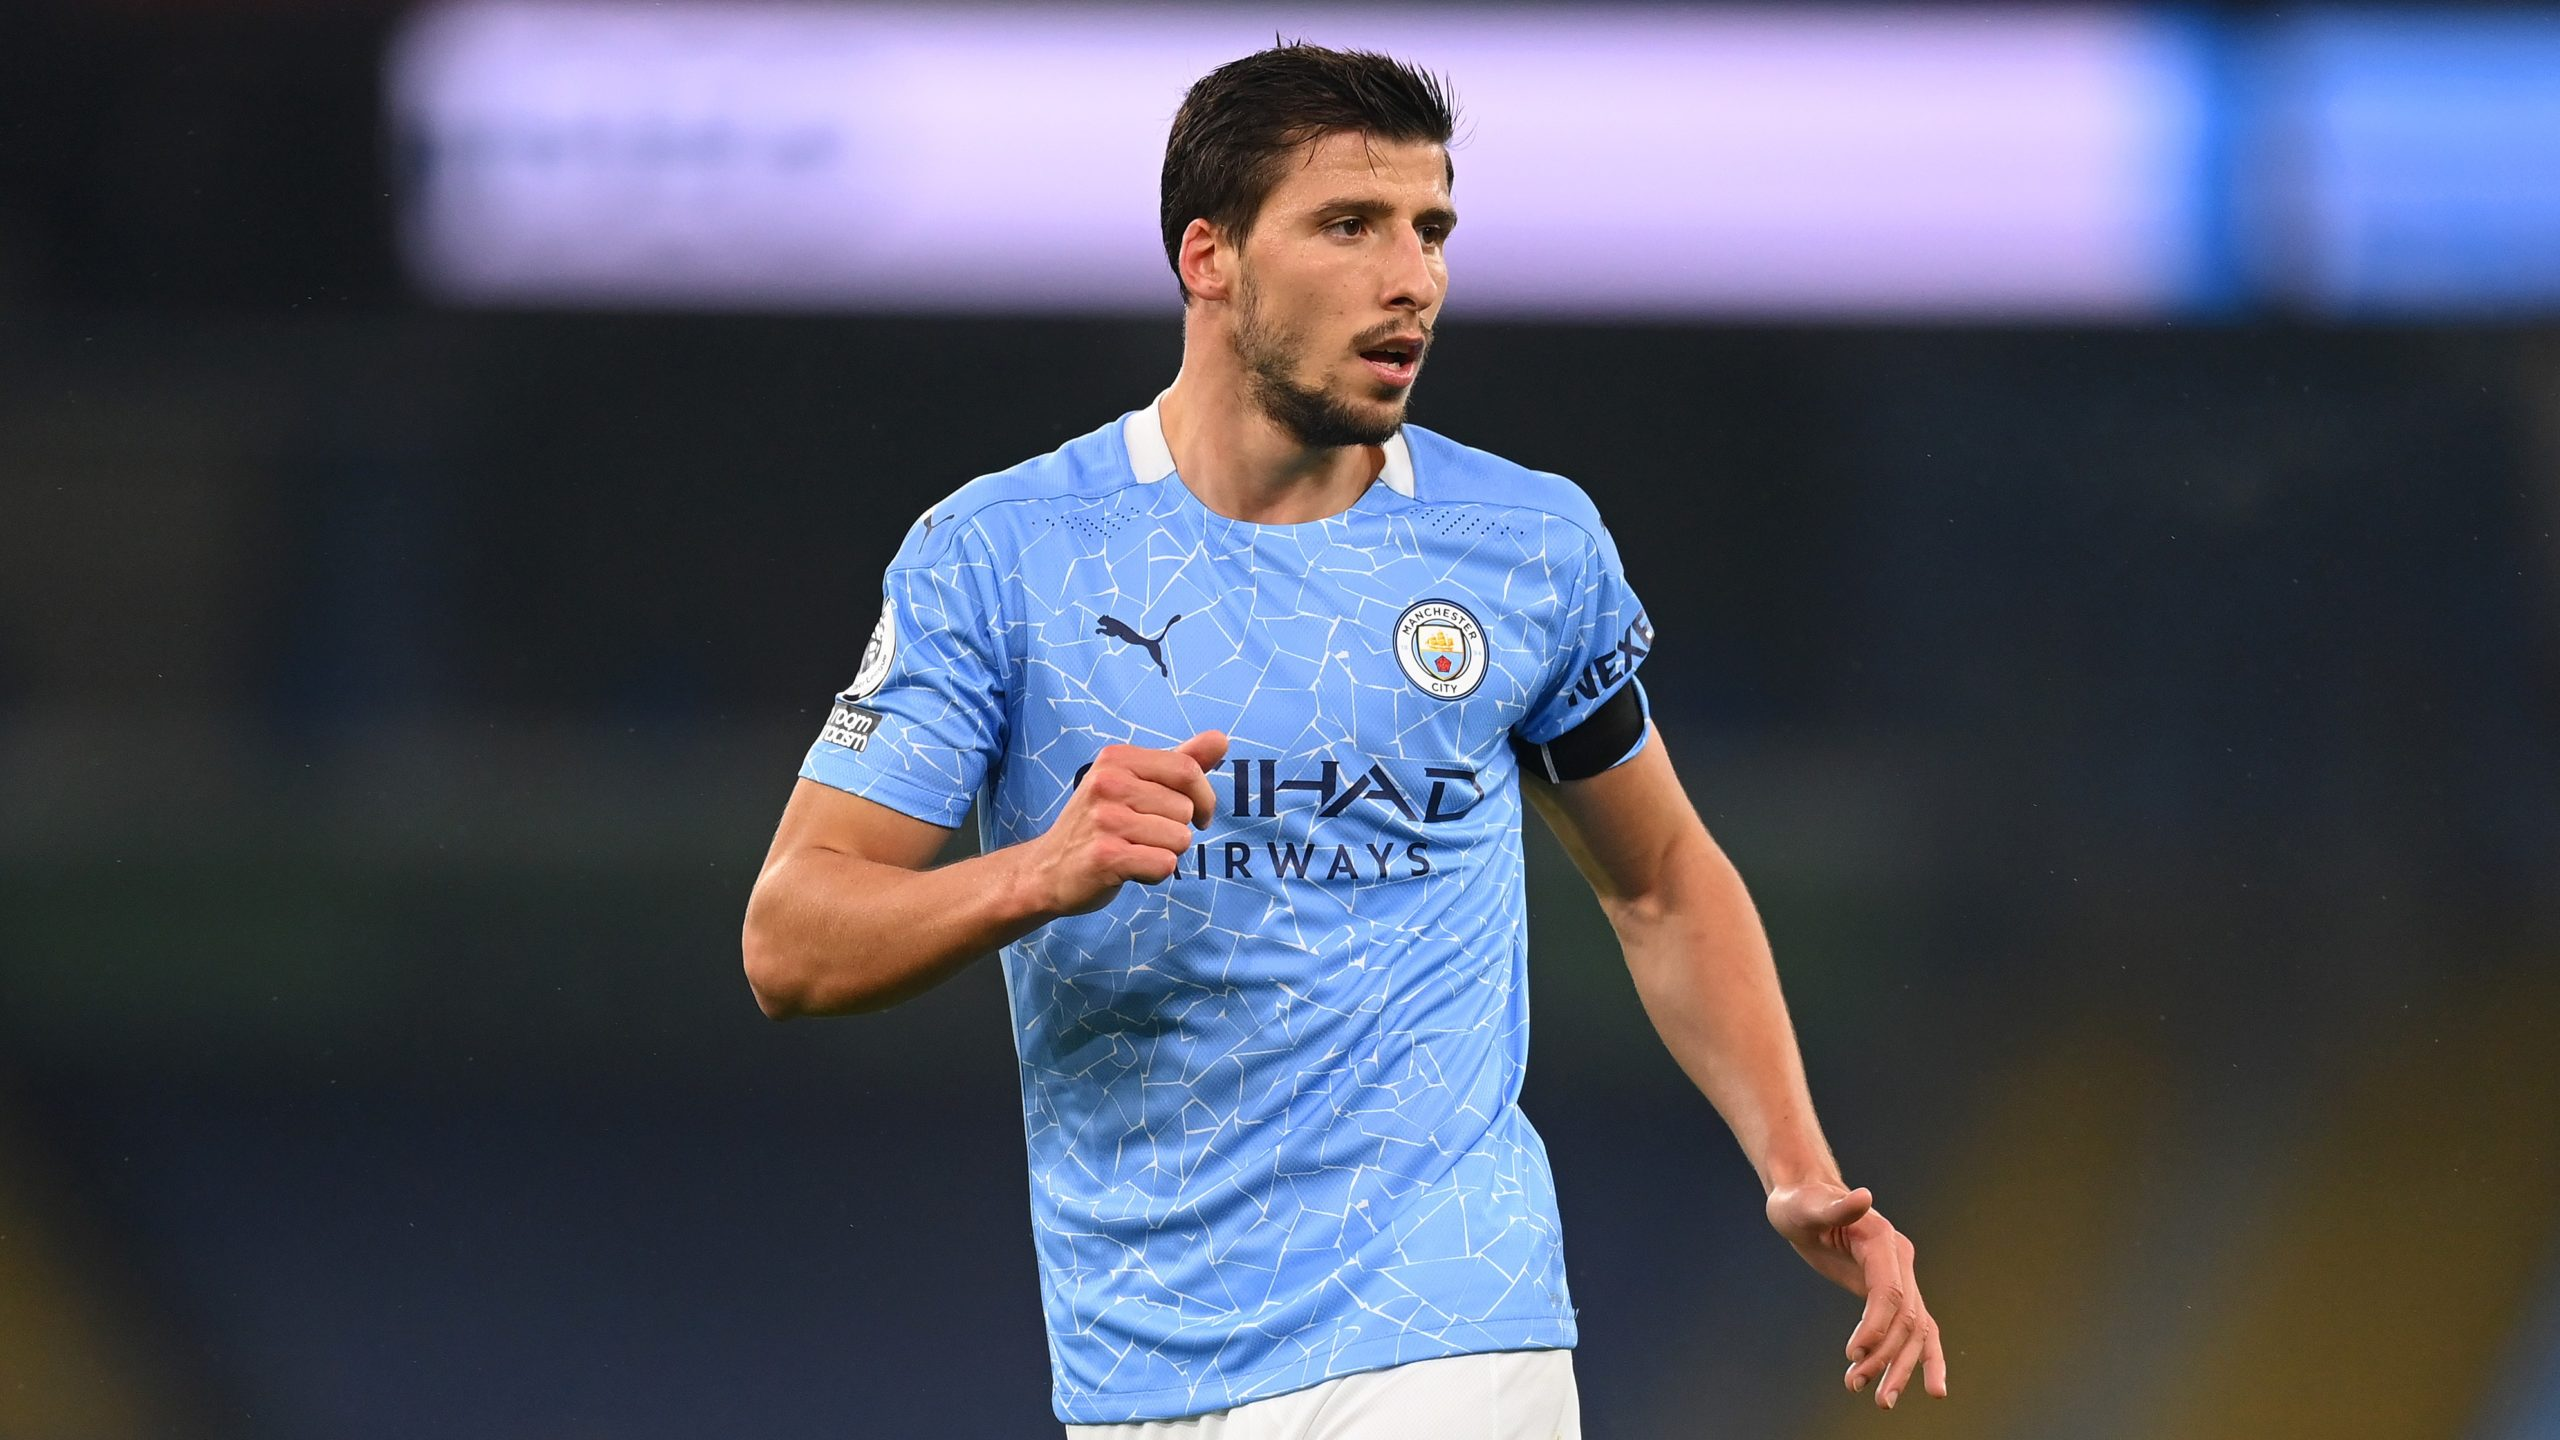 dias-is-changing-into-a-valid-captaincy-candidate-at-manchester-city-says-dunne.jpg